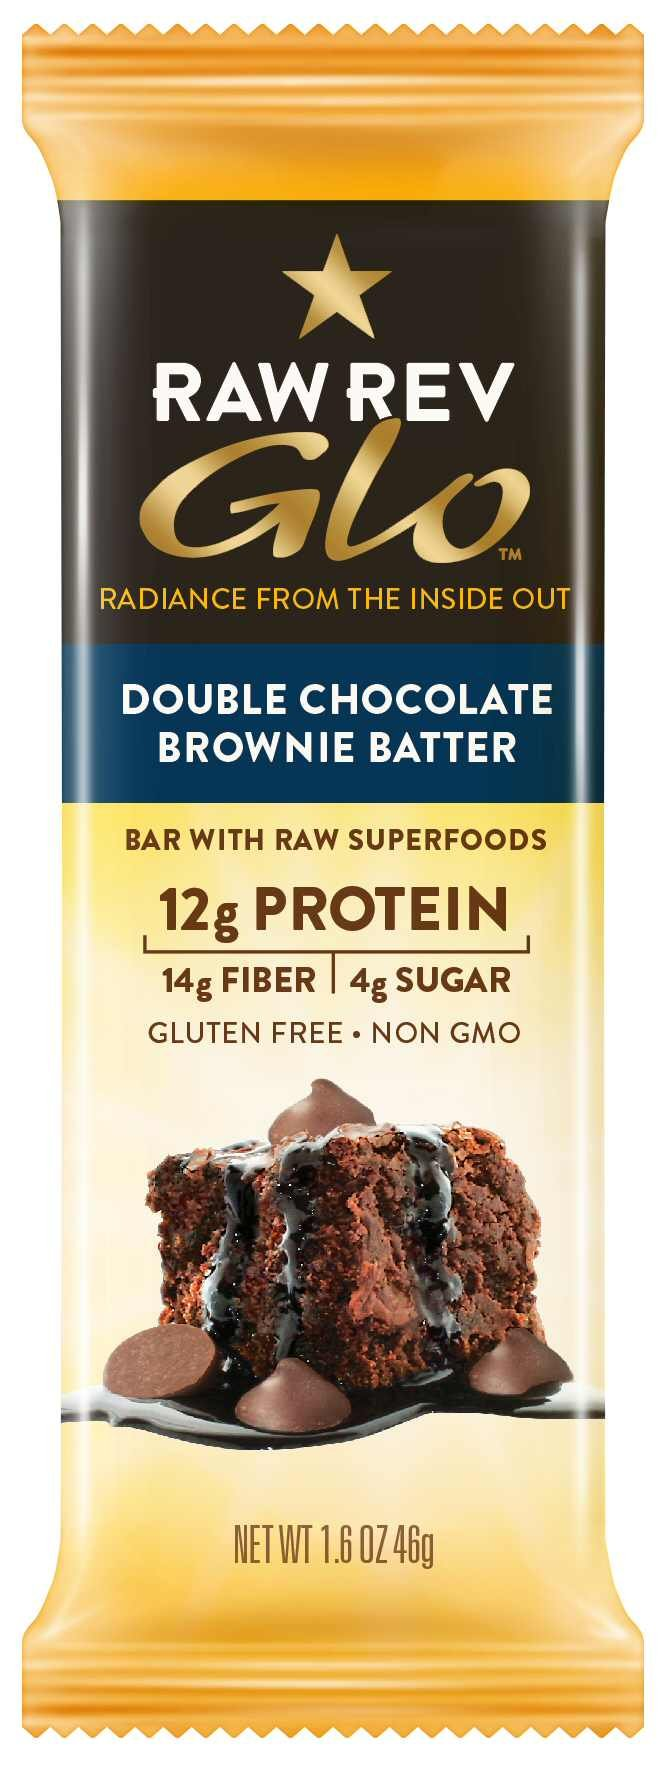 Raw Rev Glo Vegan, Gluten-Free Protein Bars - Double Chocolate Brownie Batter 1.6 Ounce (12 Count)